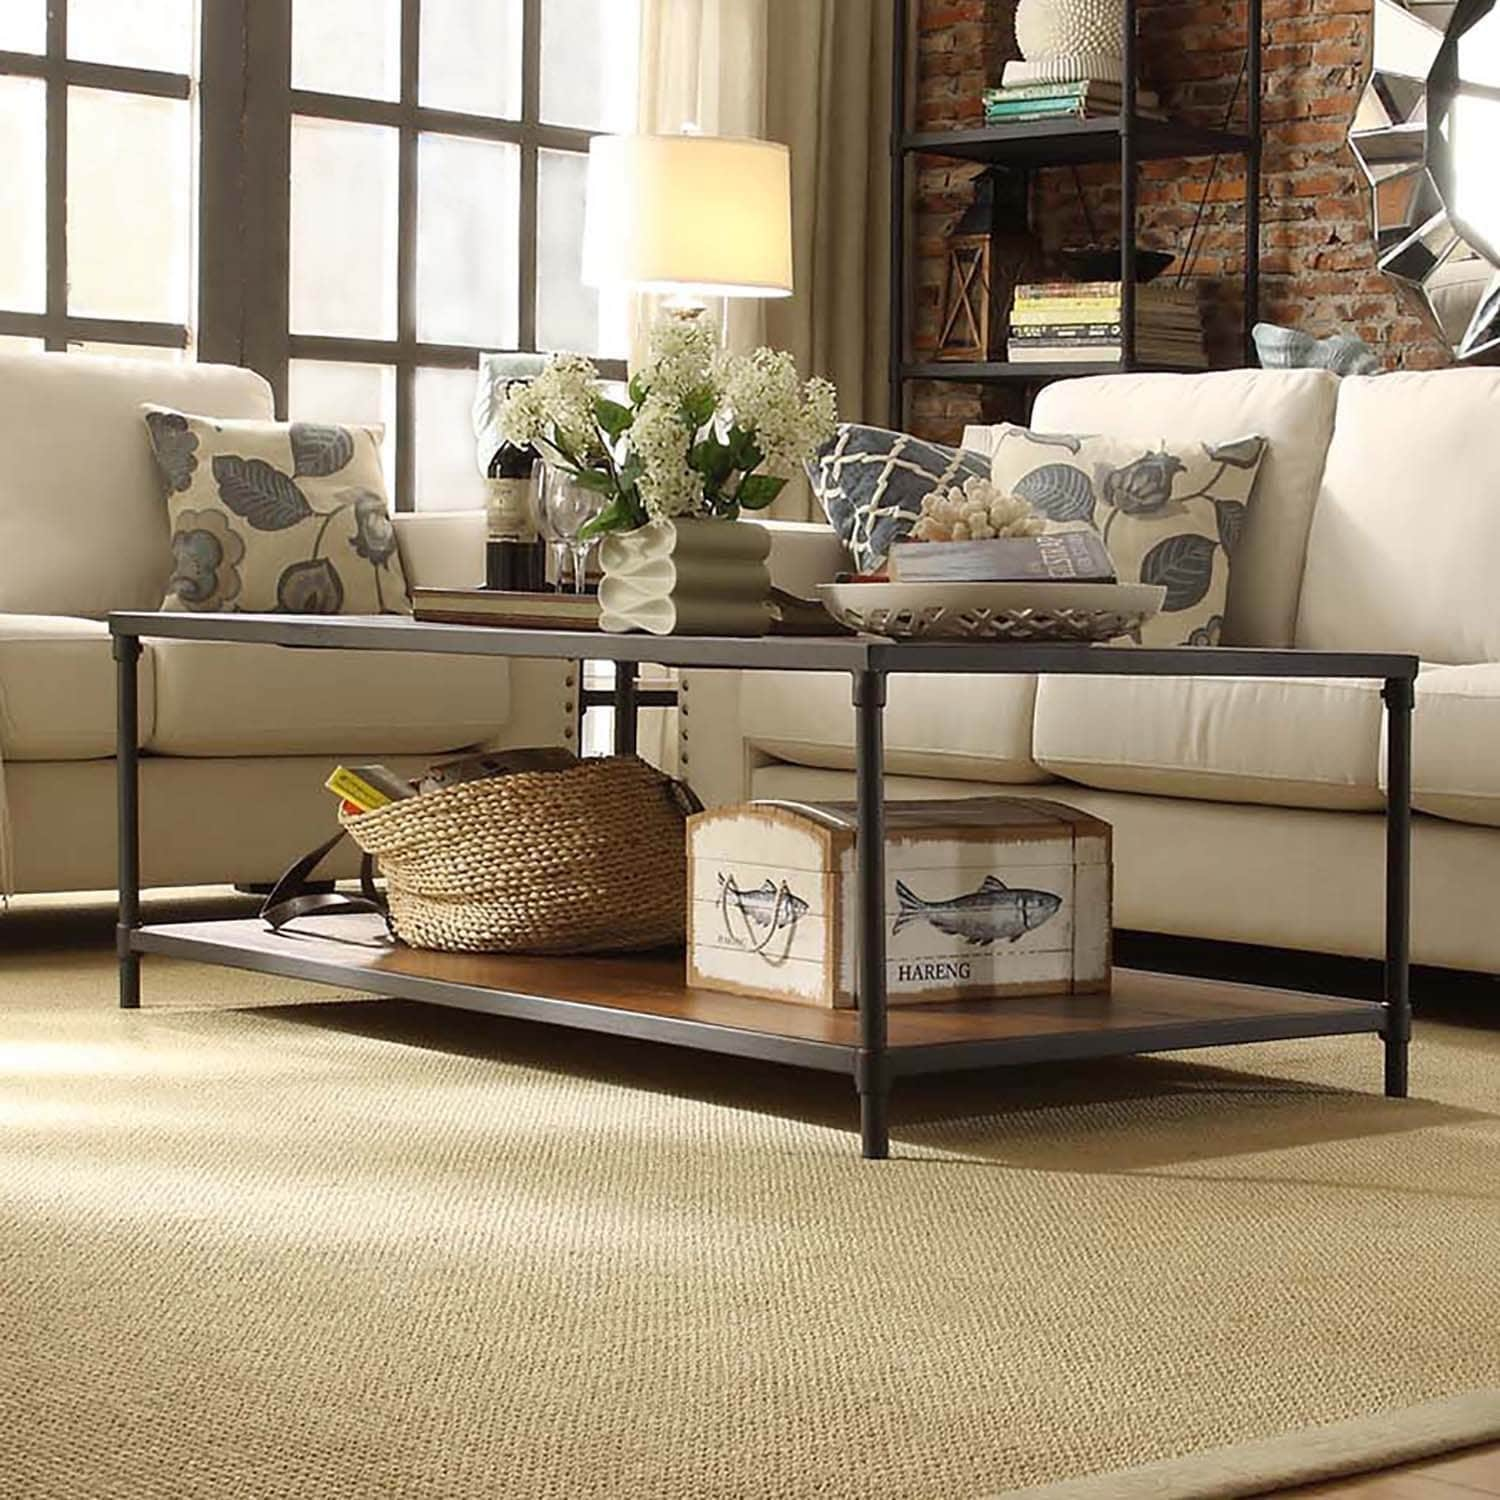 Harrison Industrial Rustic Pipe Frame Accent Coffee Table by iNSPIRE Q  Classic - Free Shipping Today - Overstock.com - 17126200